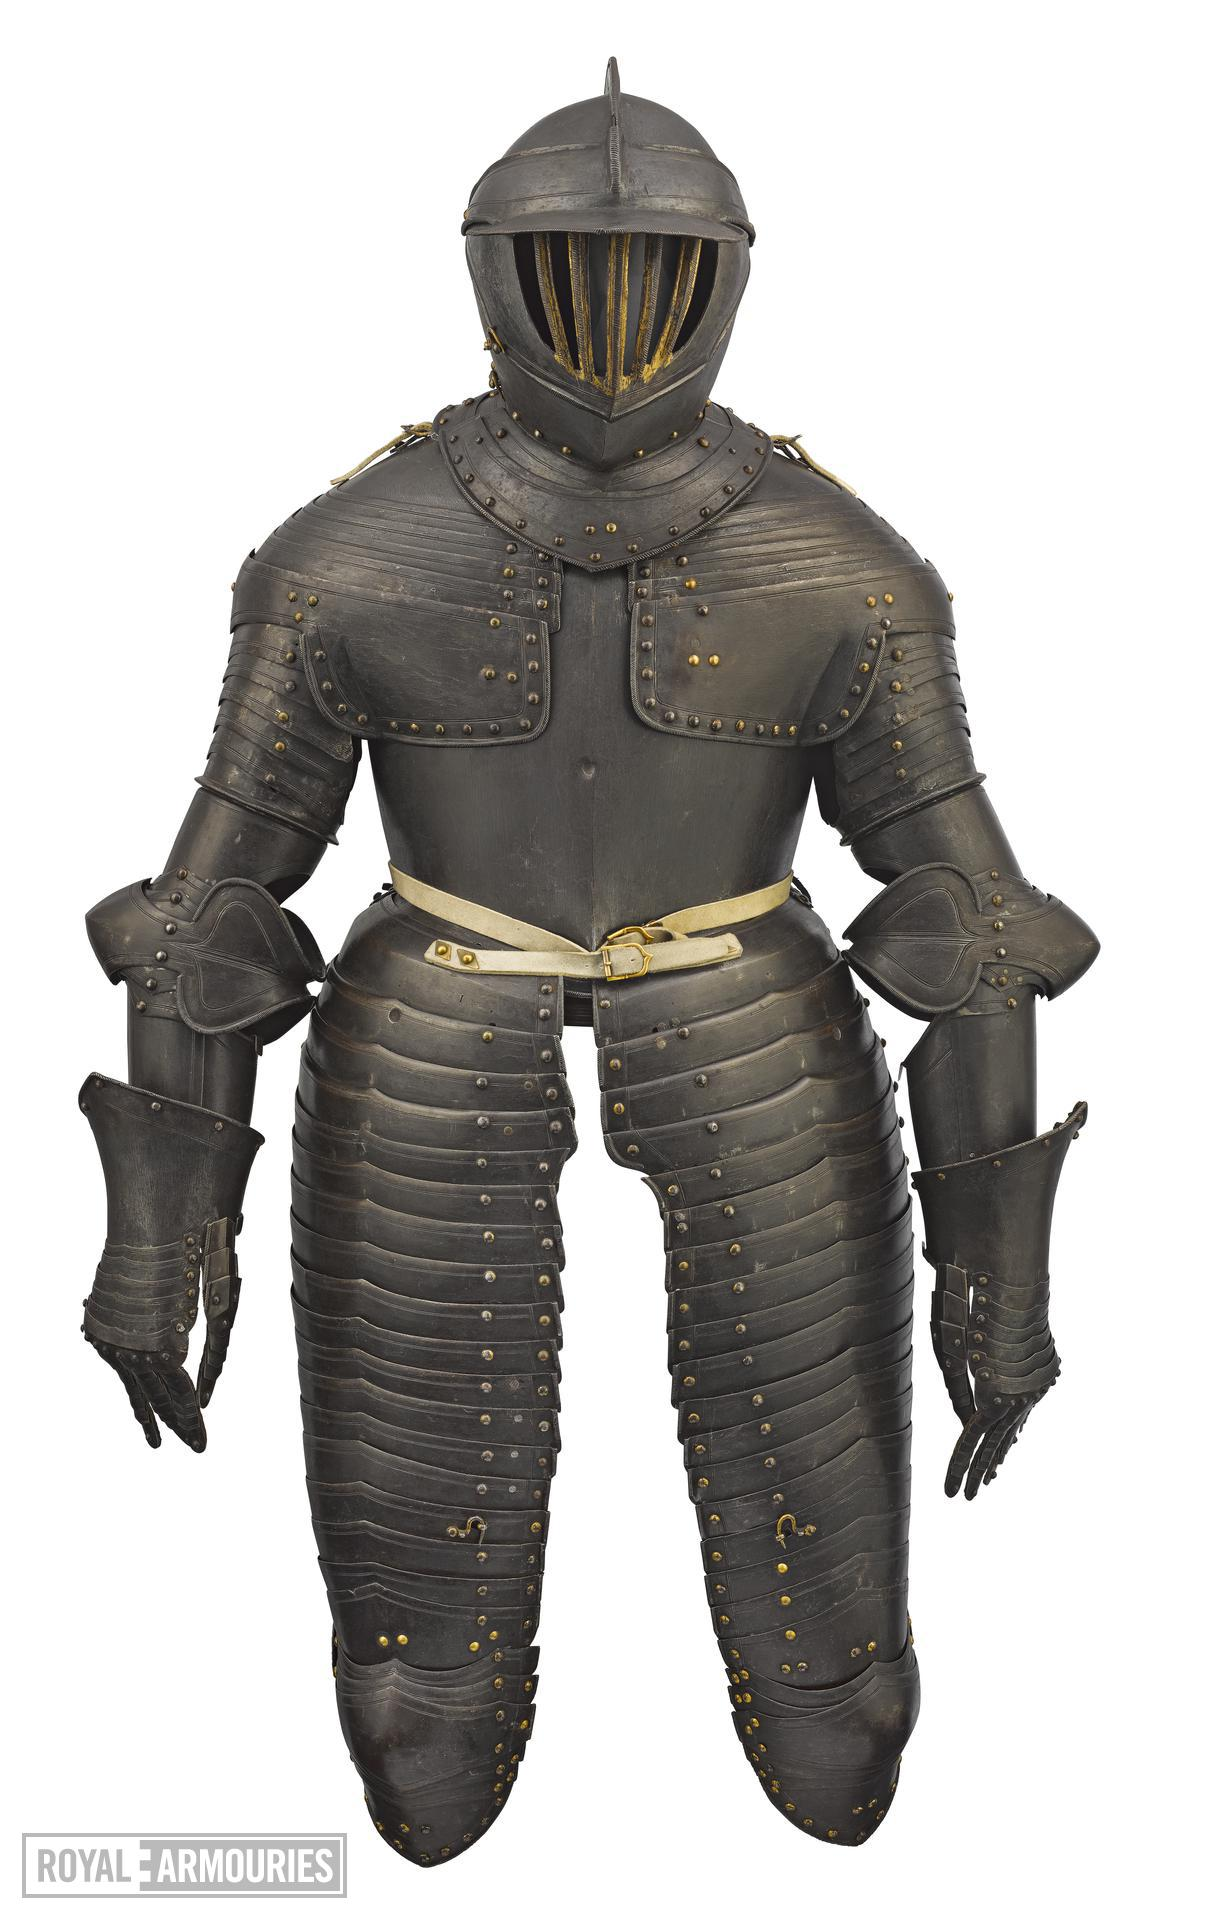 Dutch cuirassier armour of around 1630 with traces of gilding to the close burgonet. II.140